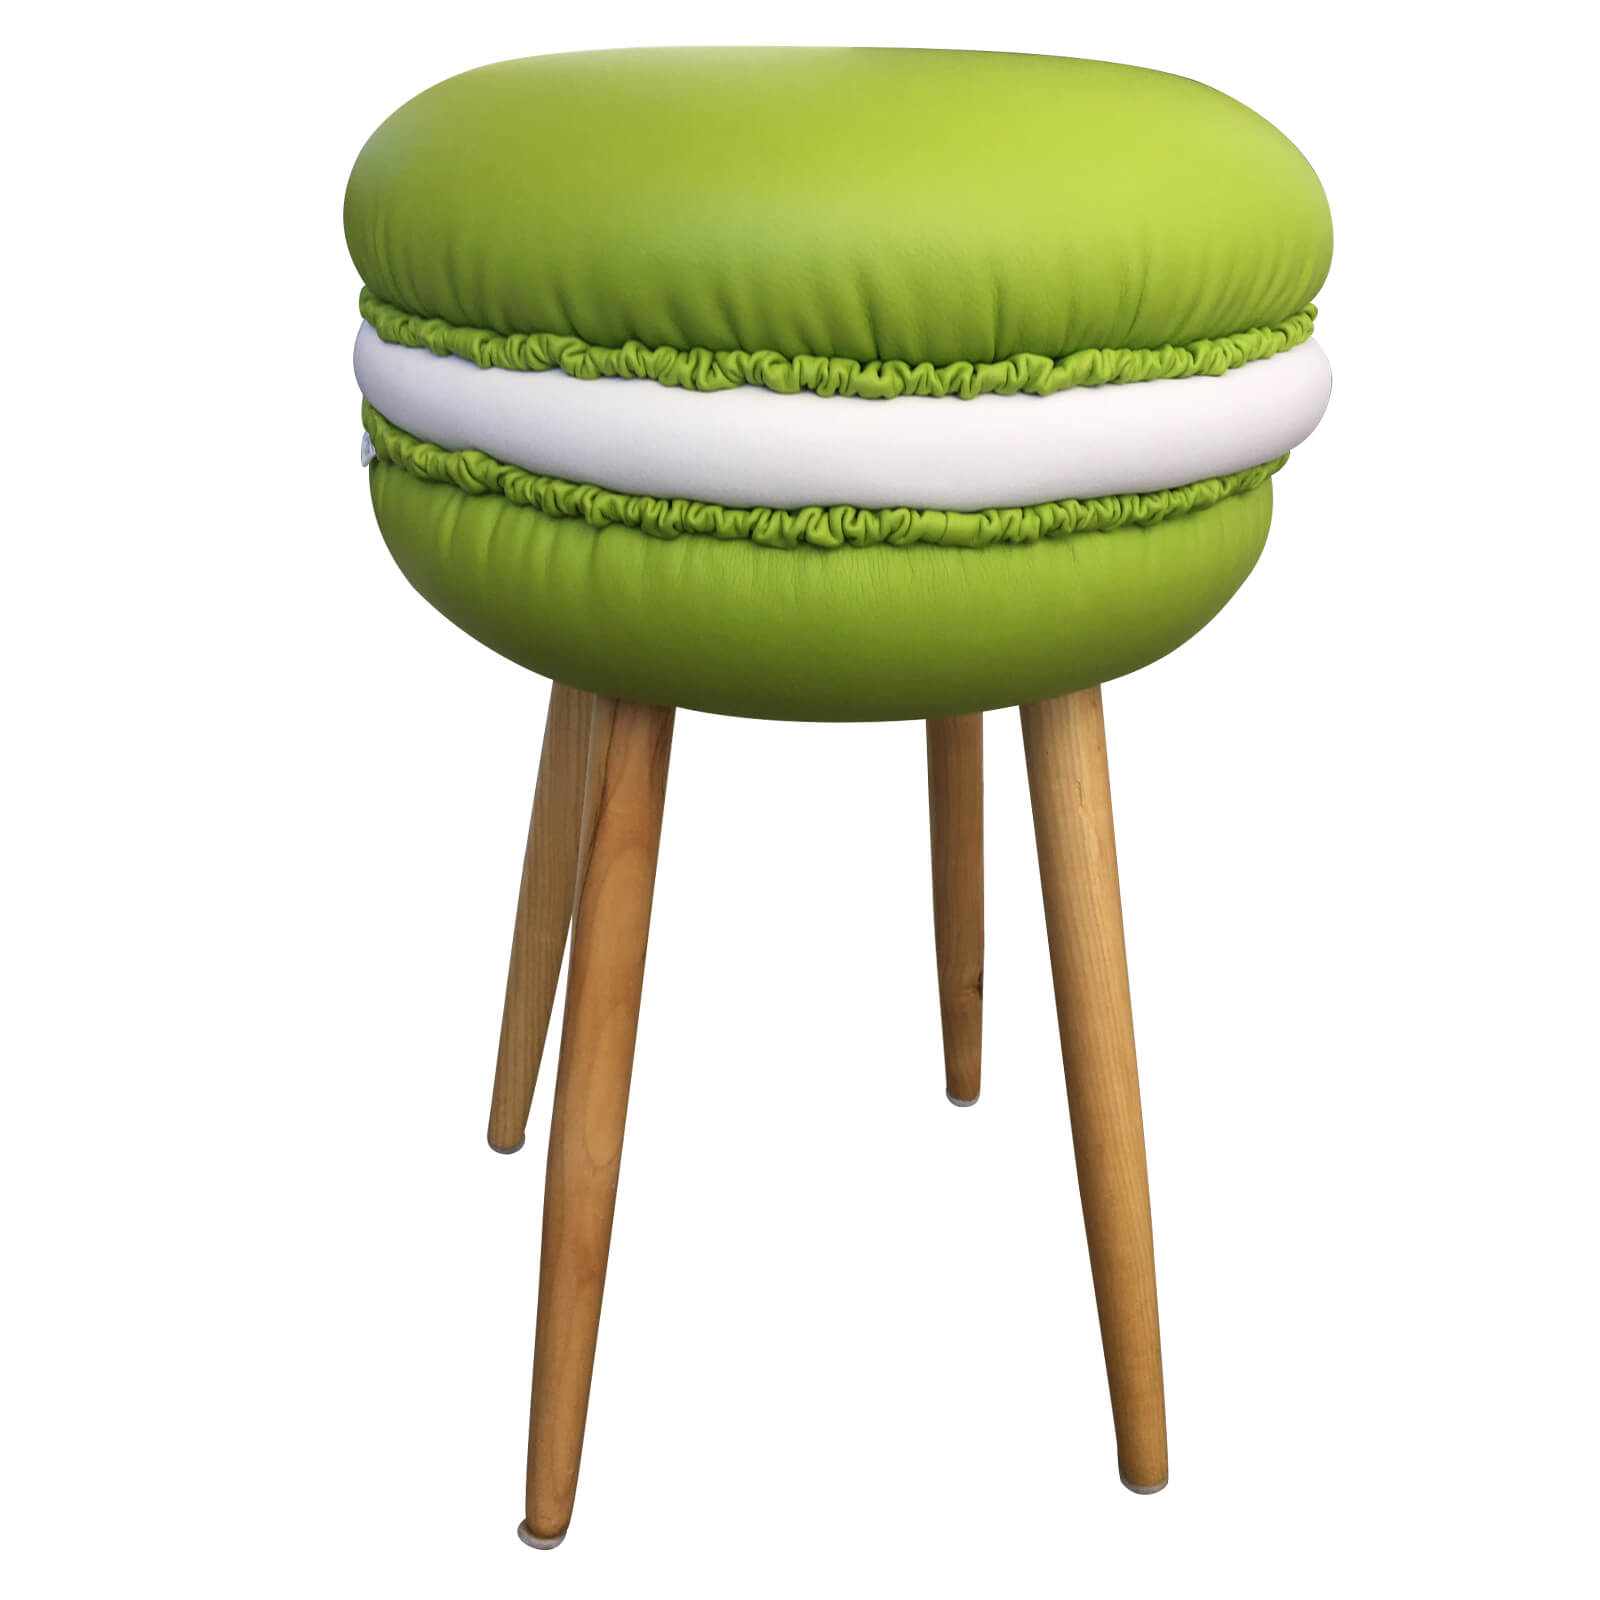 Two Design Lovers Makastool green